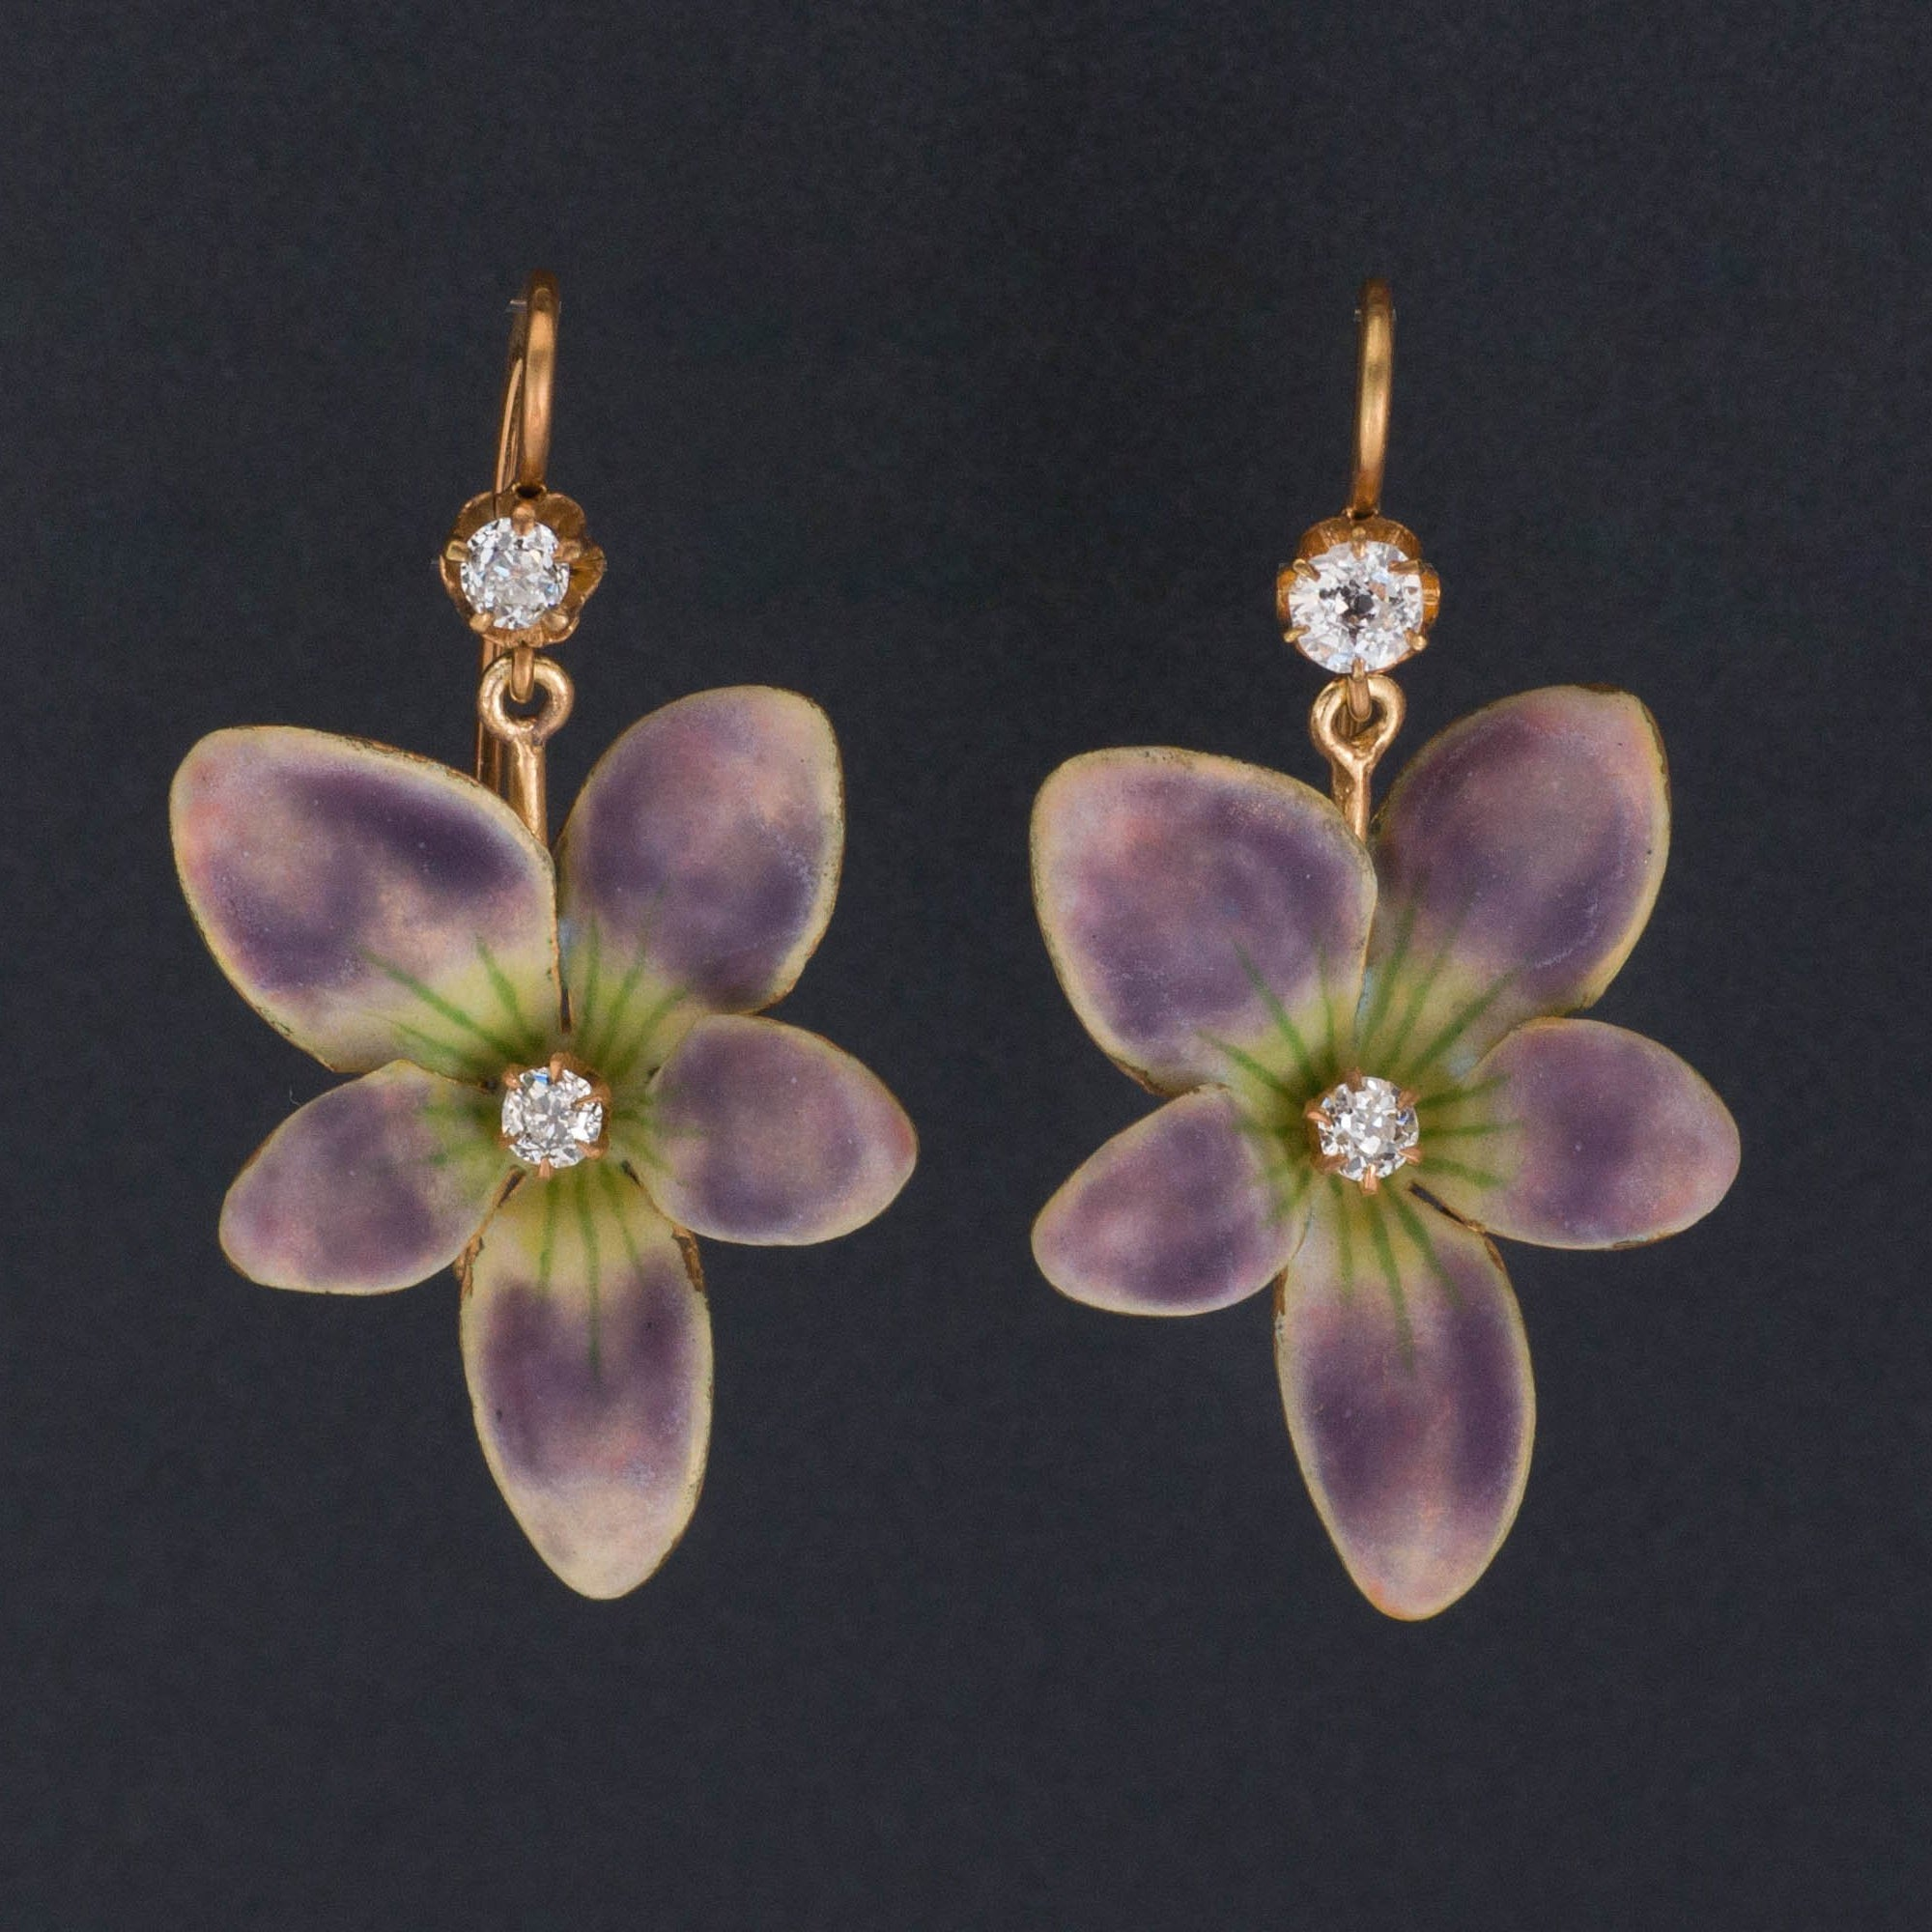 Violet Earrings | 14k Enamel Flower Earrings | Antique Violet Earrings with Diamonds | Antique Pin Conversion Earrings